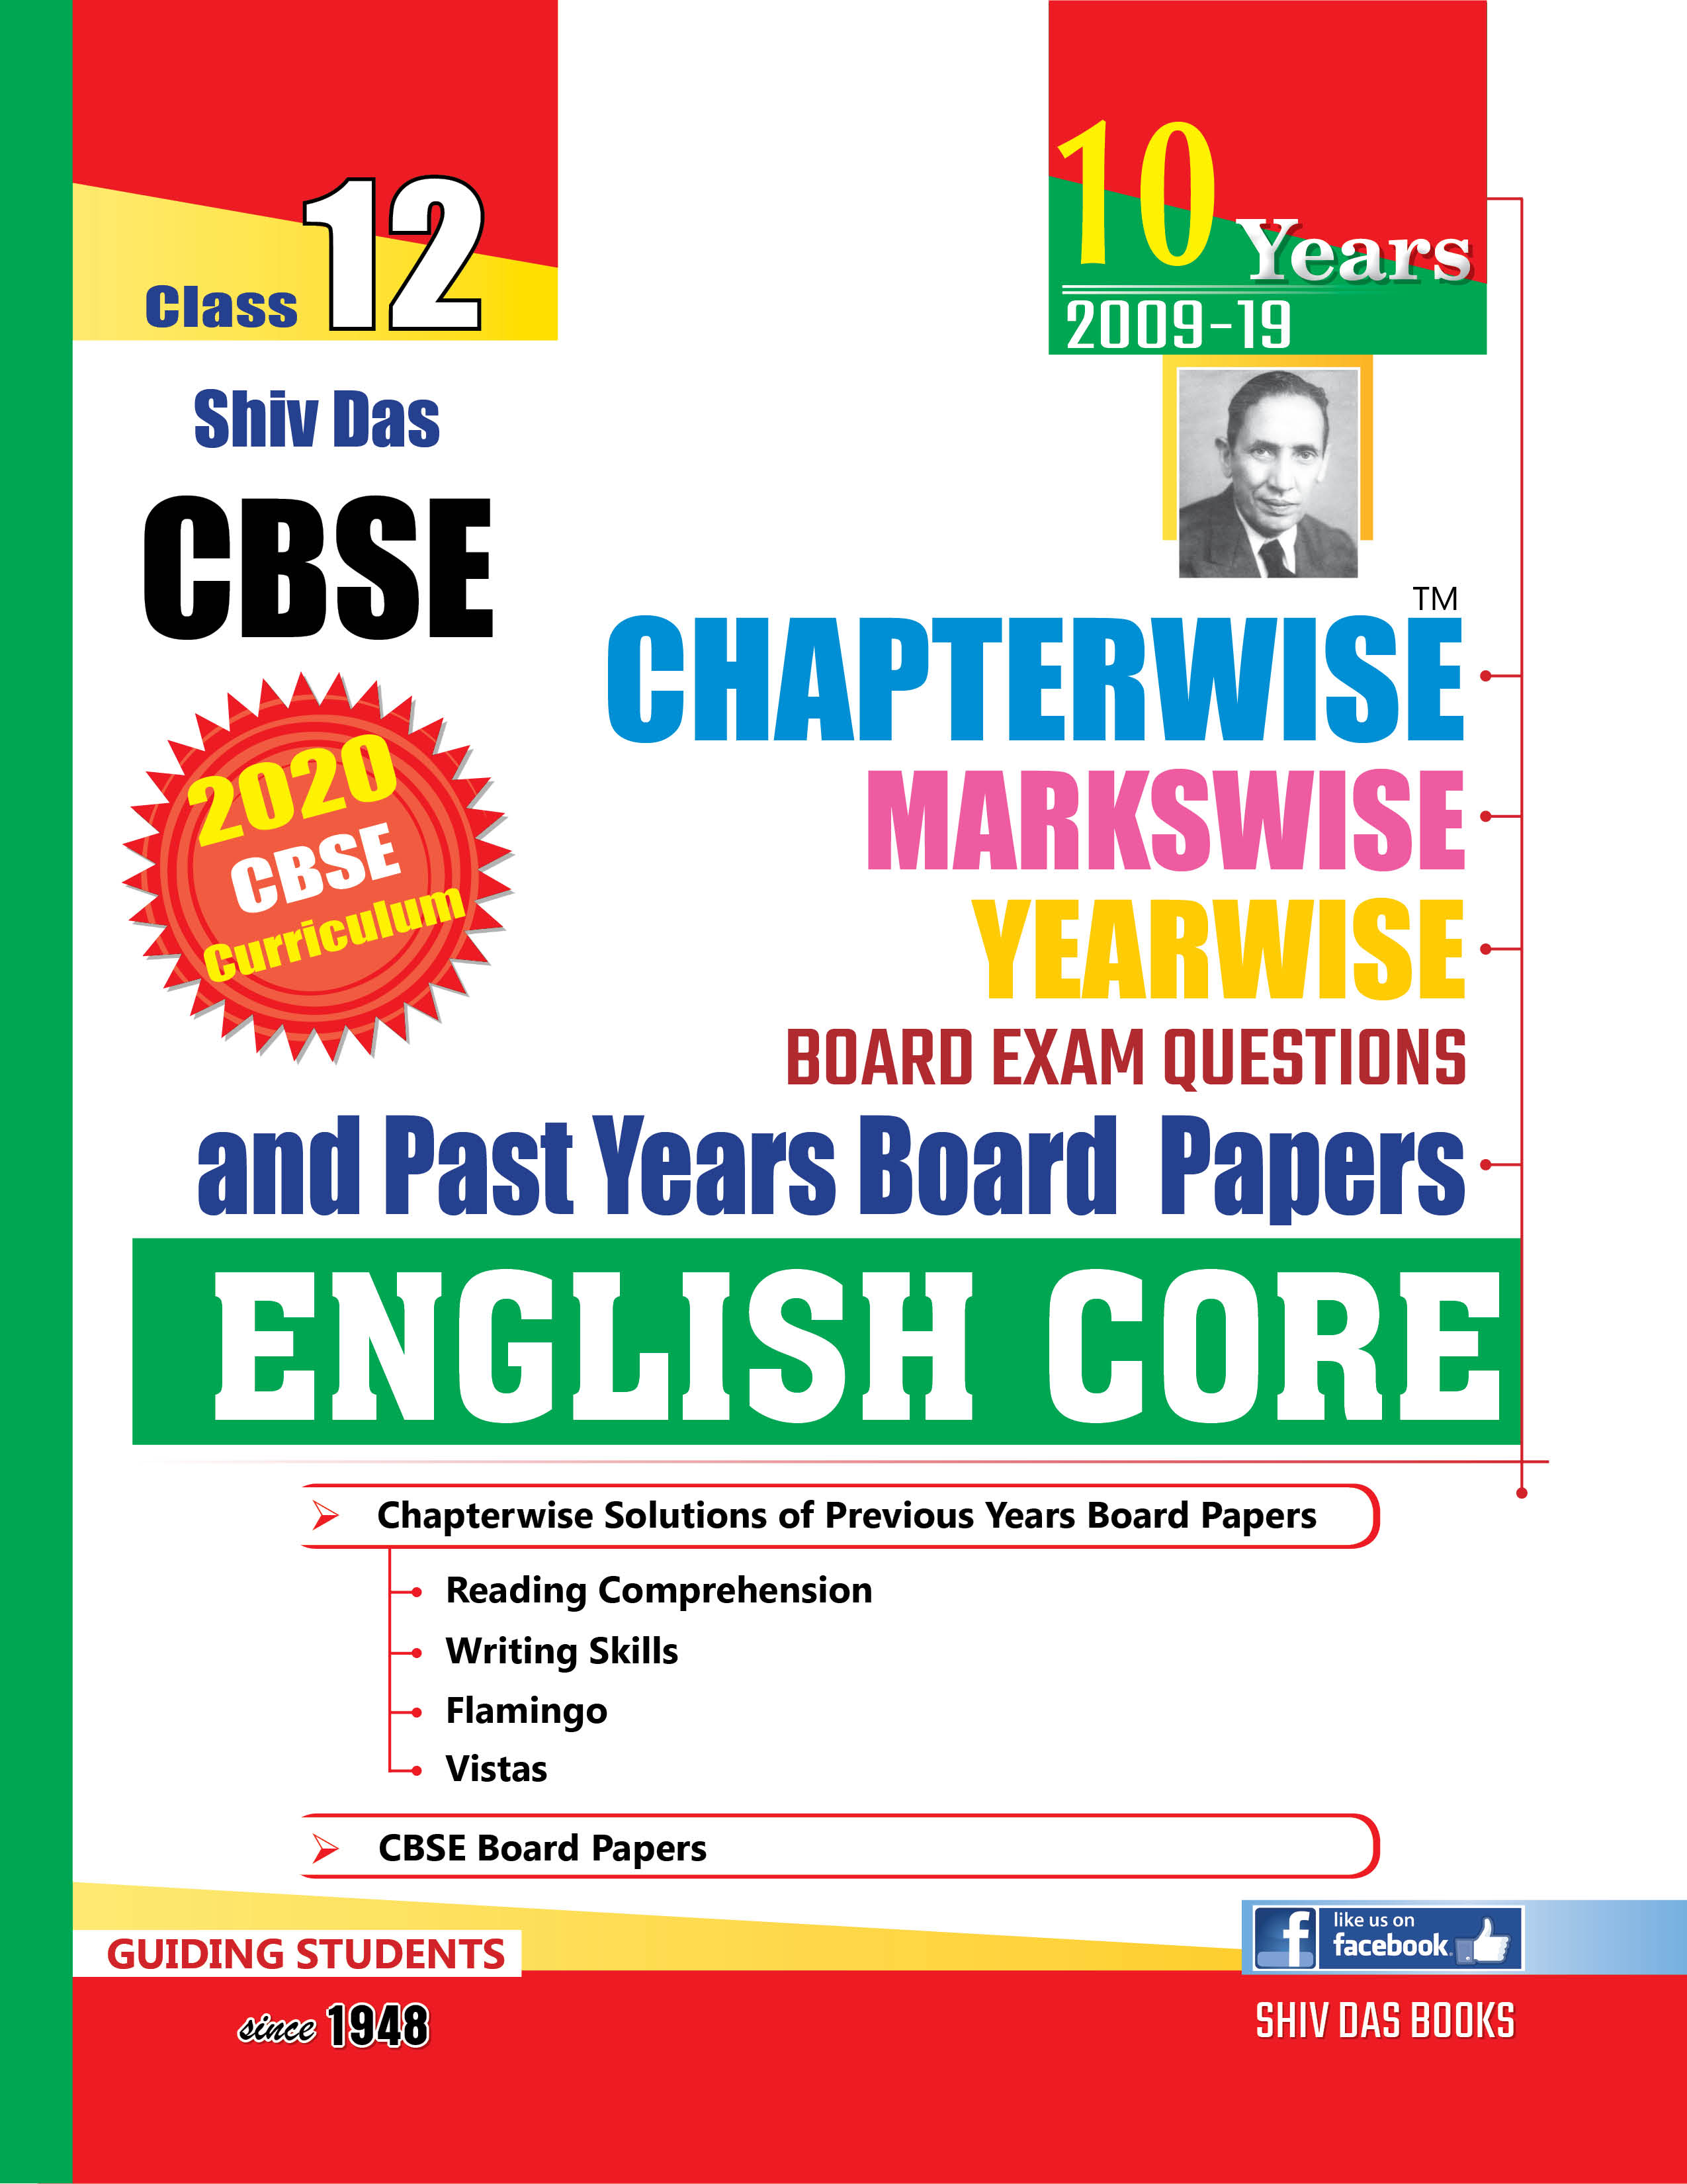 CBSE Chapterwise Markswise Yearwise Board Exam Questions Bank For Class 12 English Core (2020 Board Exam Edition)